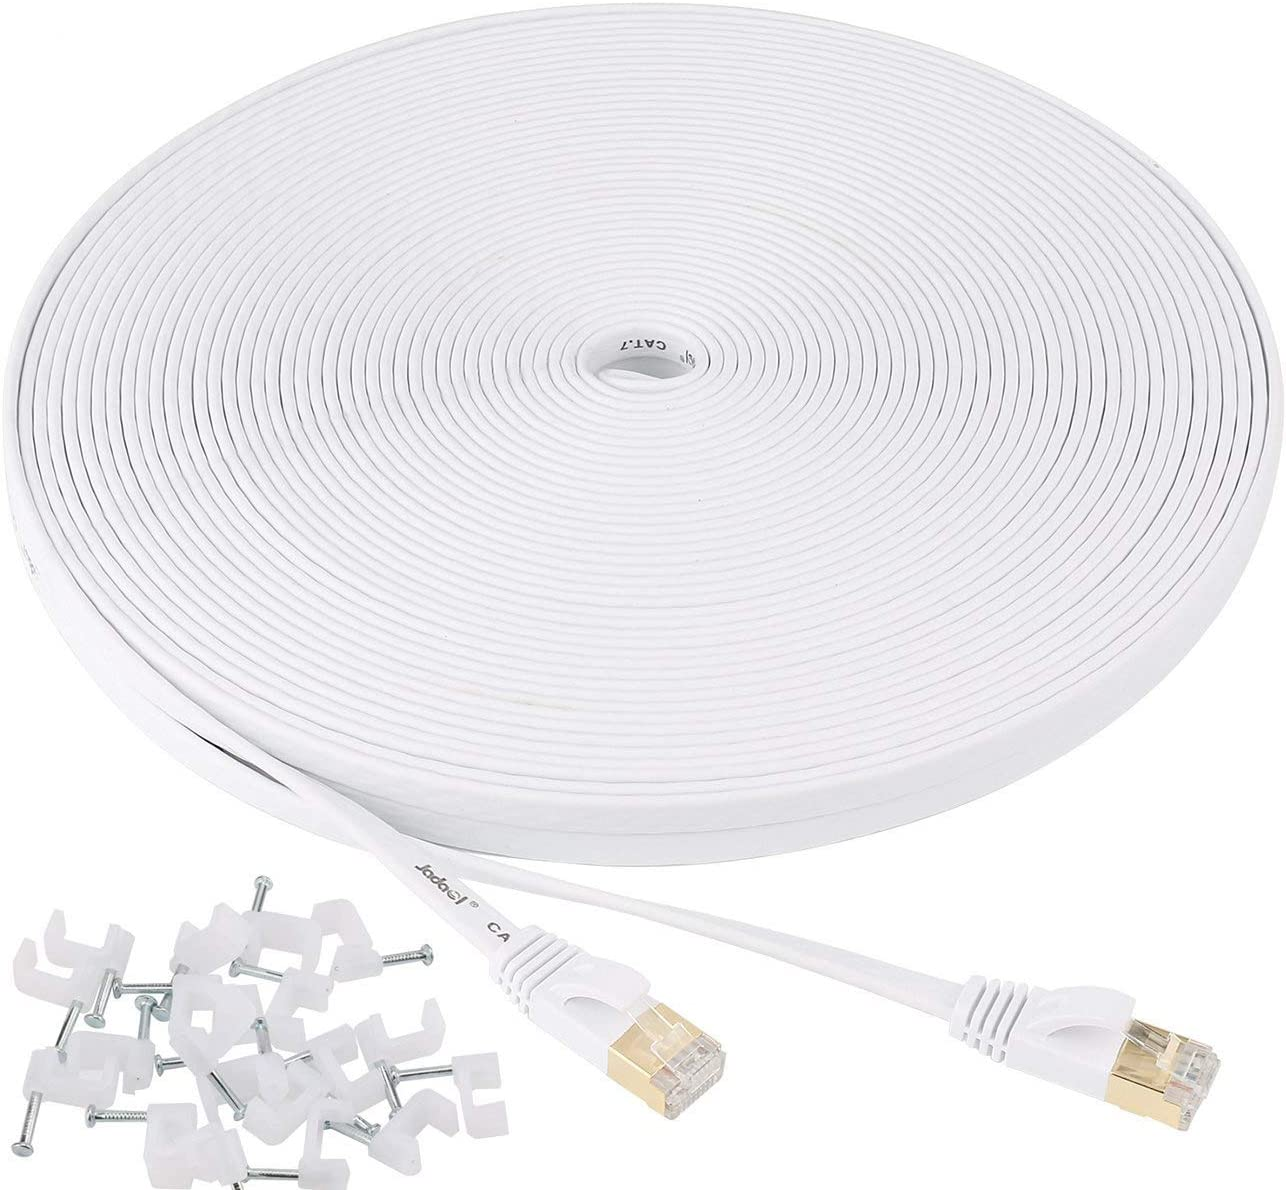 Jadaol Cat 7 Ethernet Cable 100 ft Shielded, Solid Flat Internet Network Computer patch cord, faster than Cat5e/cat6 network, Slim Long durable High Speed RJ45 Lan Wire for Router, Modem, Xbox – White: Computers & Accessories